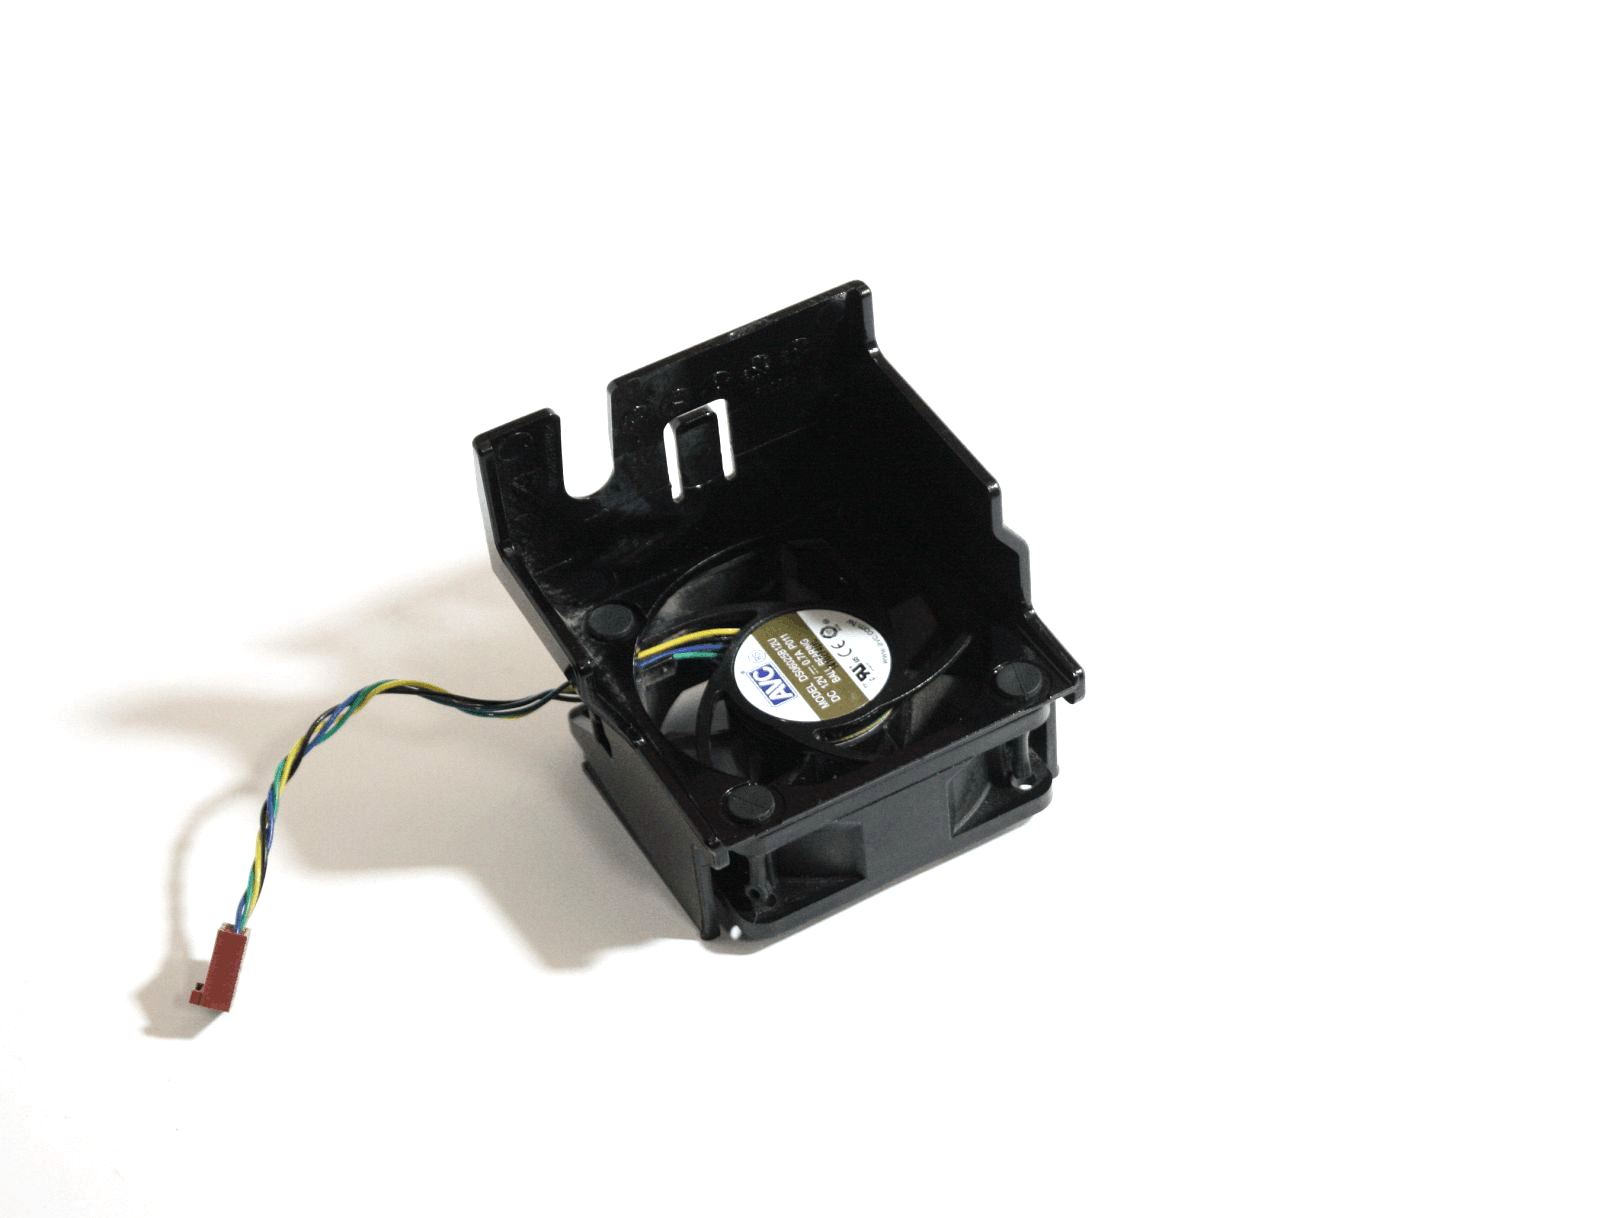 Genuine AVC HP DC7900 DC7800 Computer Cooling Case Fan  with Shroud  DS06025B12U